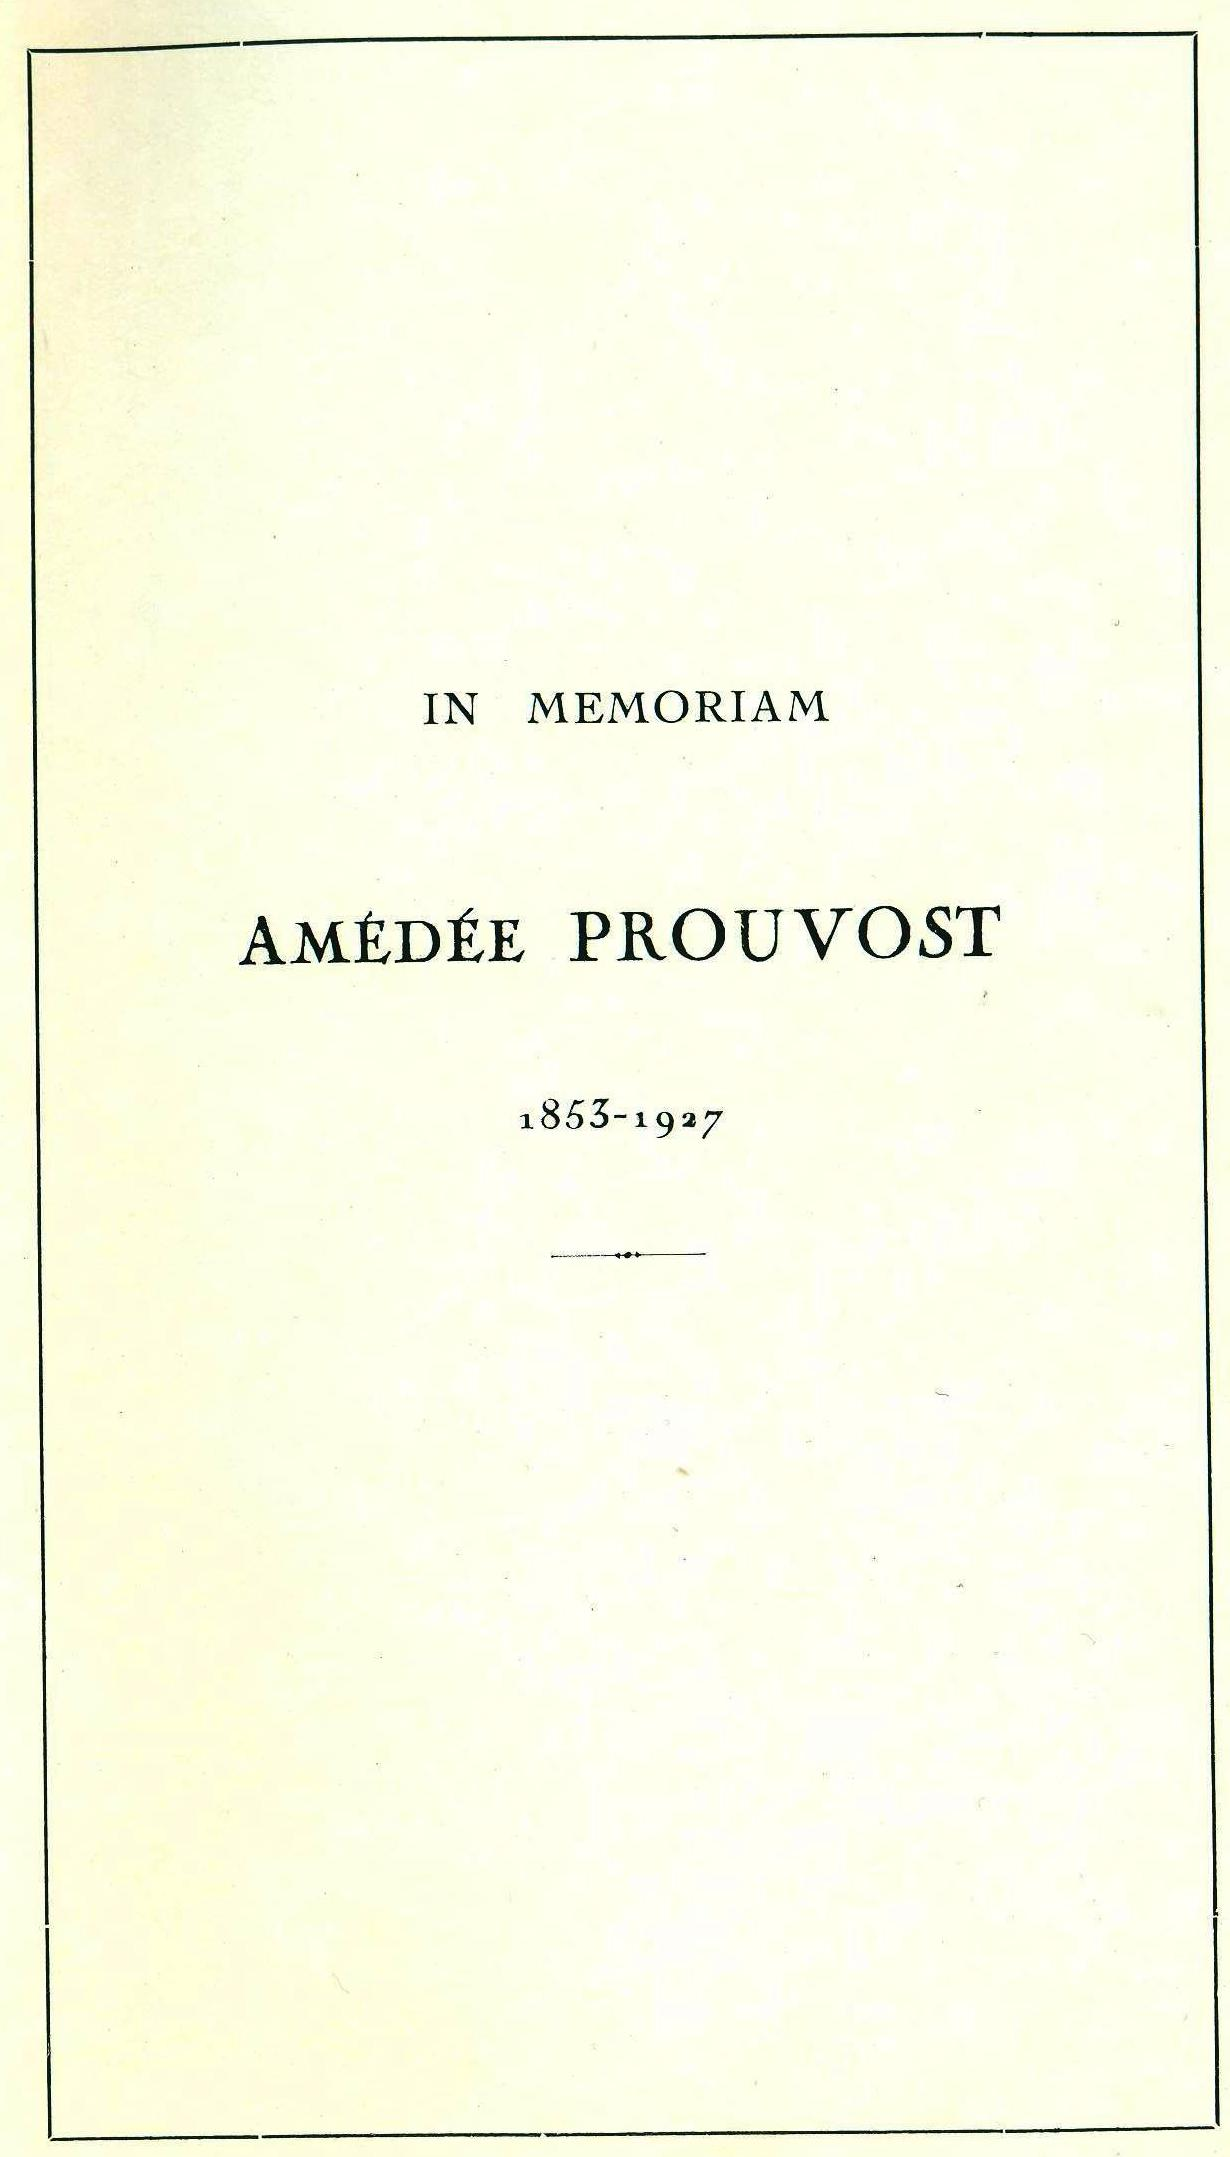 Amedee-2-Prouvost